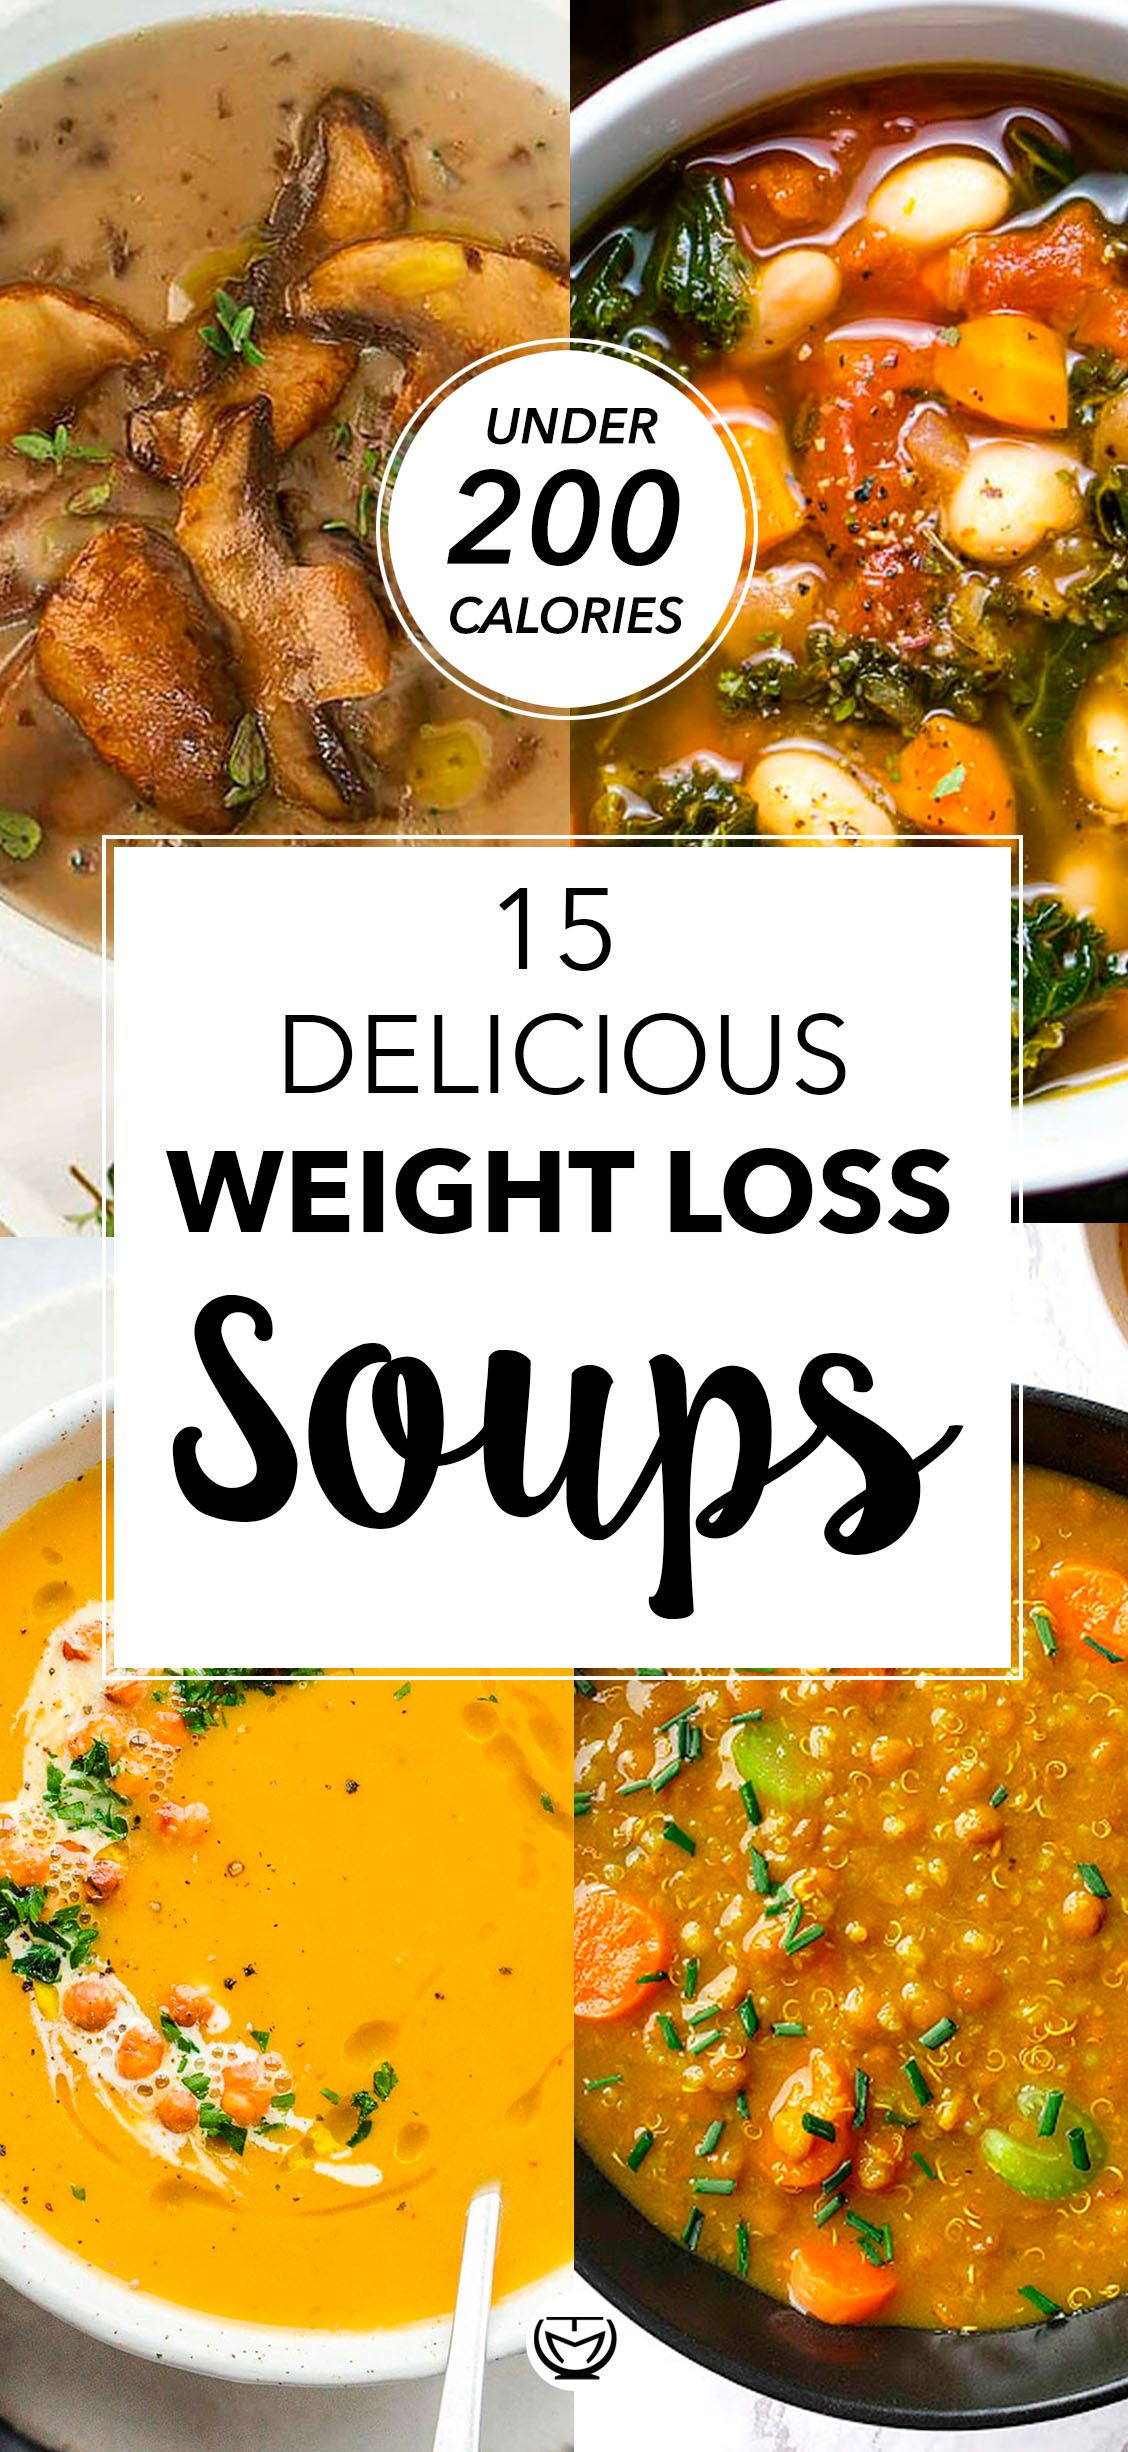 15 delicious and healthy weight loss soups (under